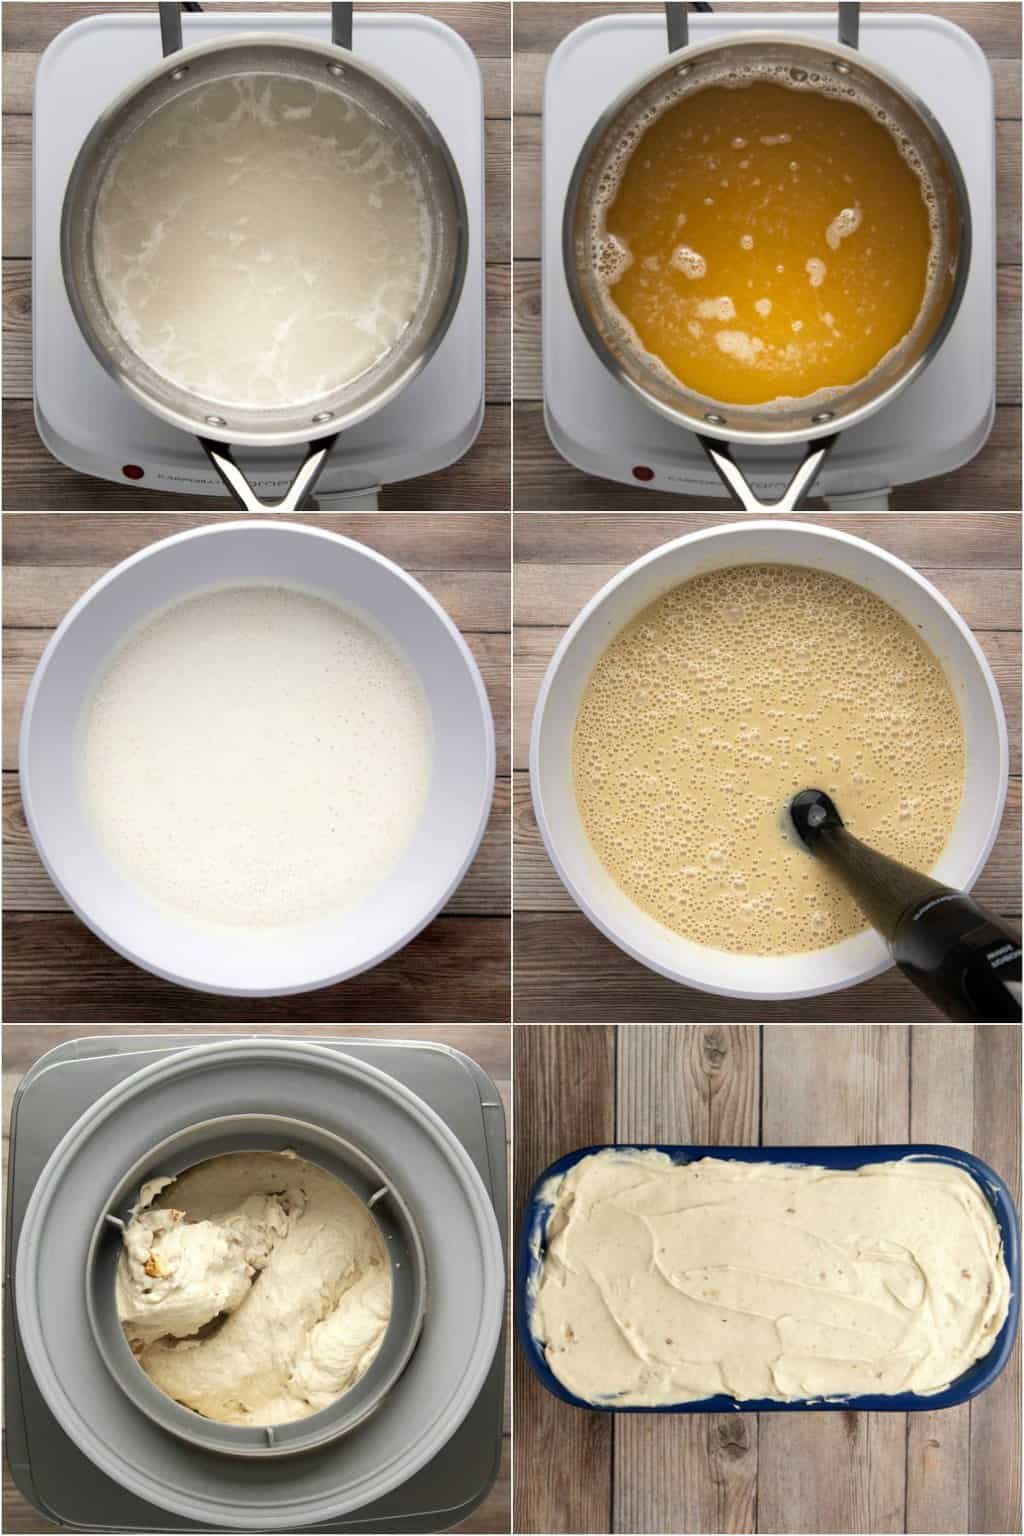 Step by step process photo collage of making vegan banana ice cream.